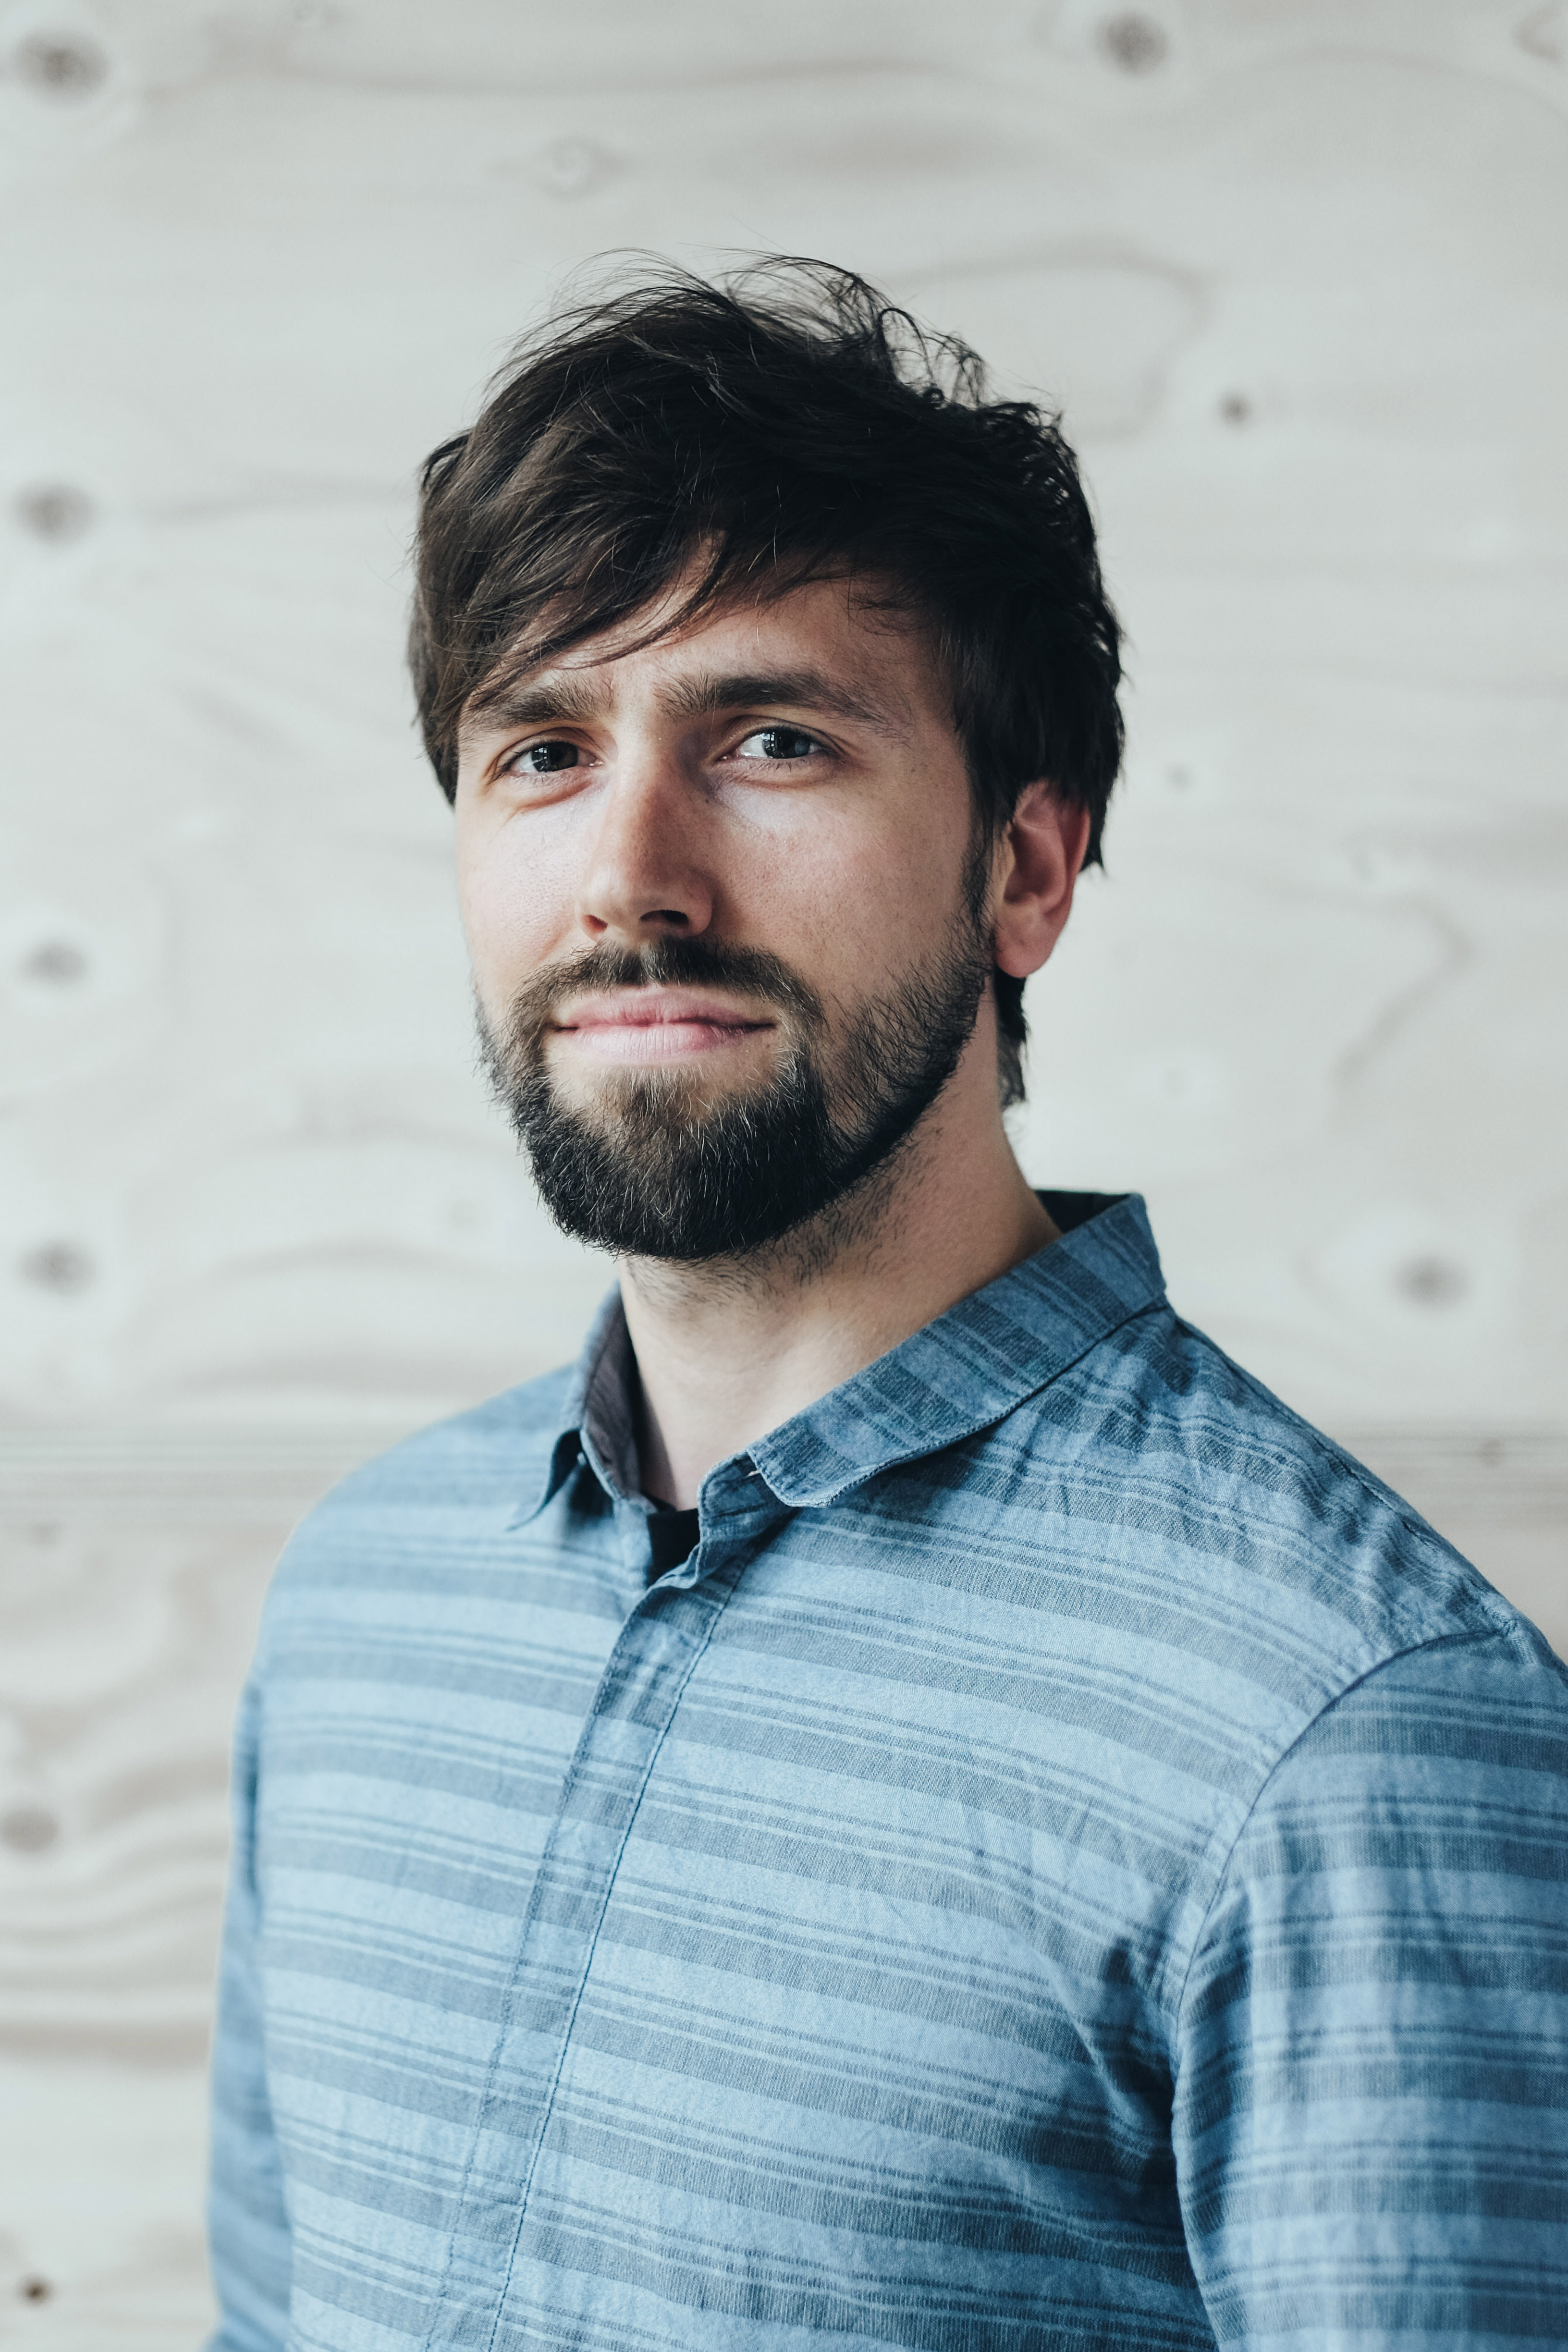 Industrial Design: Team member of our design studio in Cologne